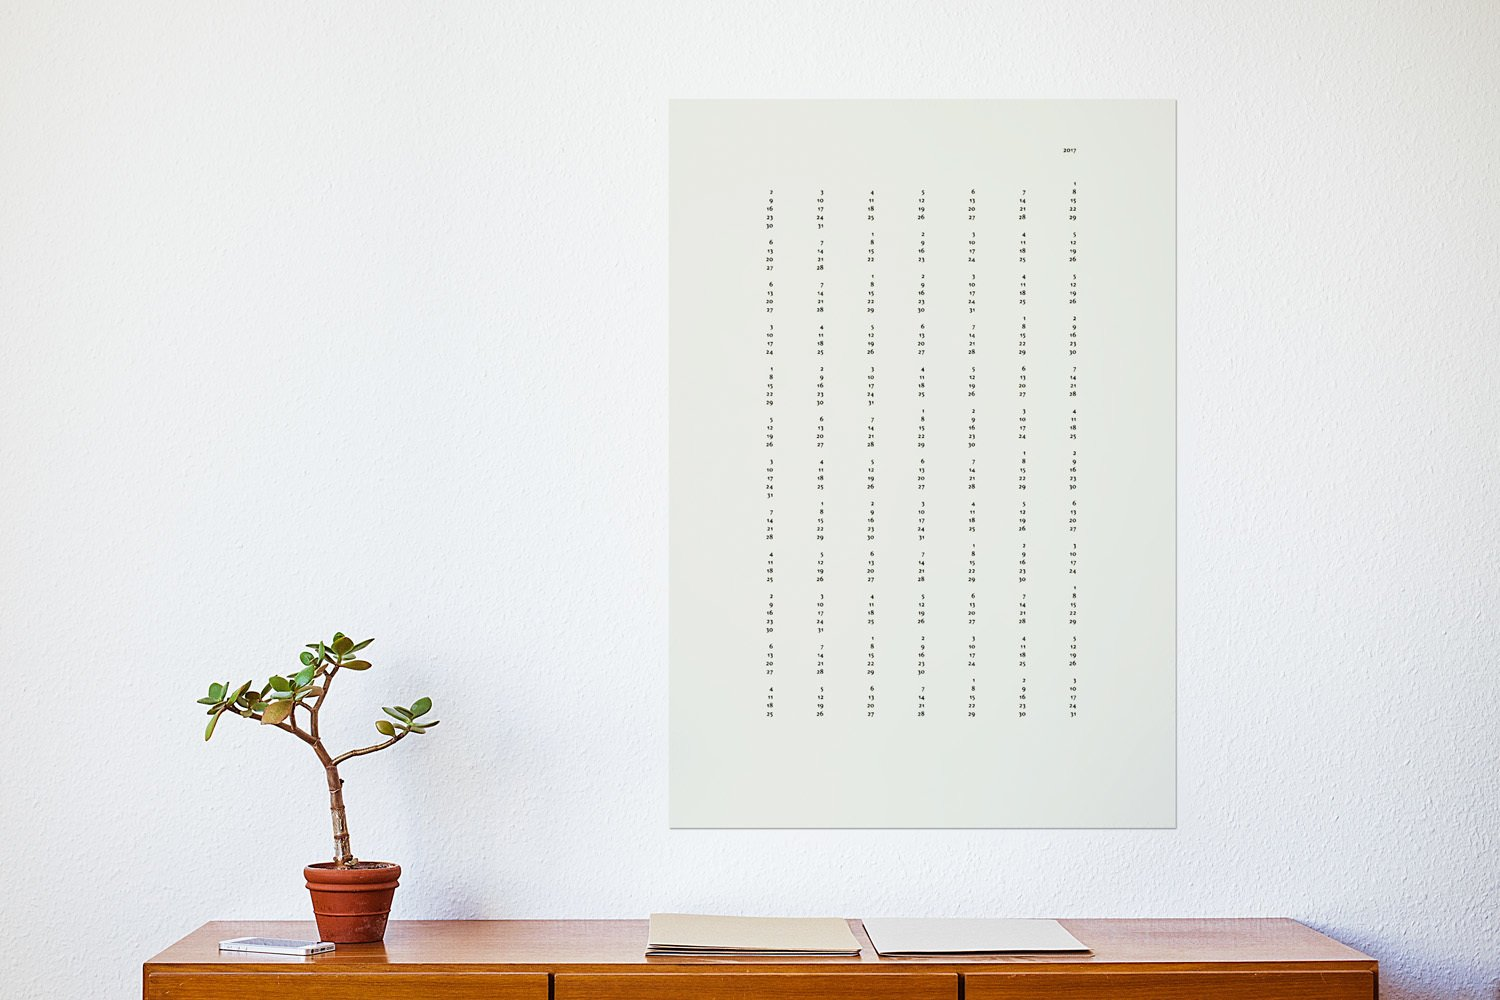 The minimalistic calendar consists of  7 columns and 12 rows.  Best Photos from »Nummern« Calendar